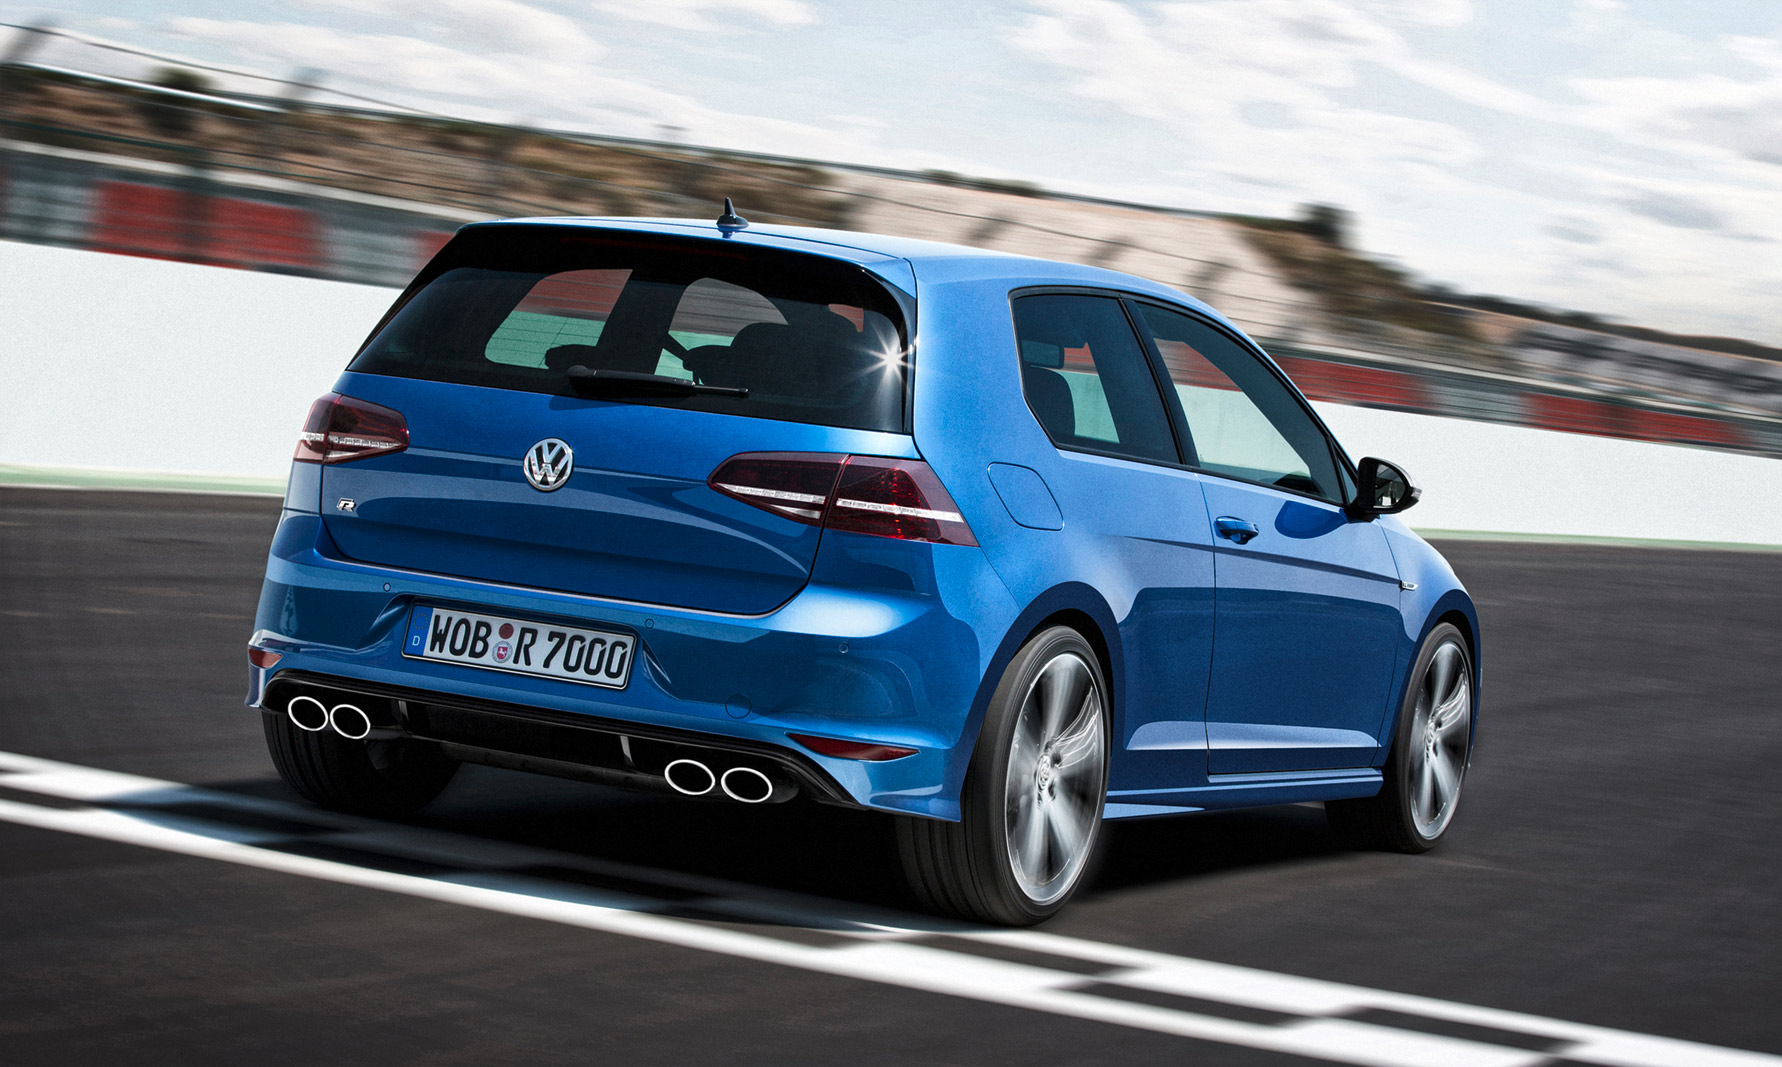 volkswagen-golf-7-r-first-drive-vwvortex-013